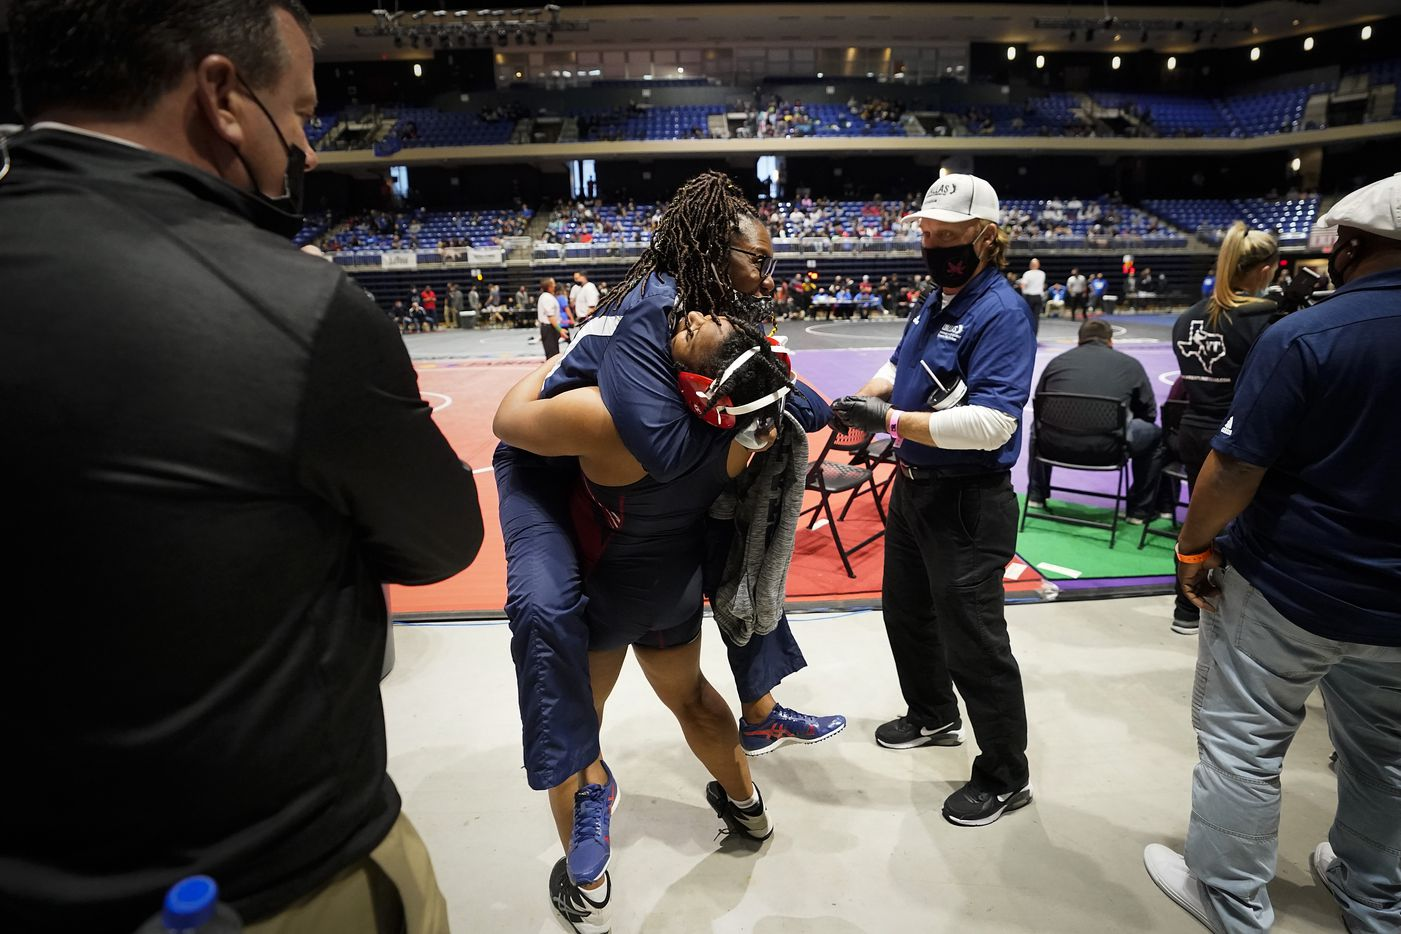 Ki`Aundra Green of Dallas Kimball lifts coach Nicholet Singh in celebration after defeating Noemi Gonzalez of Corpus Christi King in a third place in the 5A girls 185-pound weight class during the UIL State Wrestling tournament at the Berry Center on Friday, April 23, 2021, in Cypress, Texas.